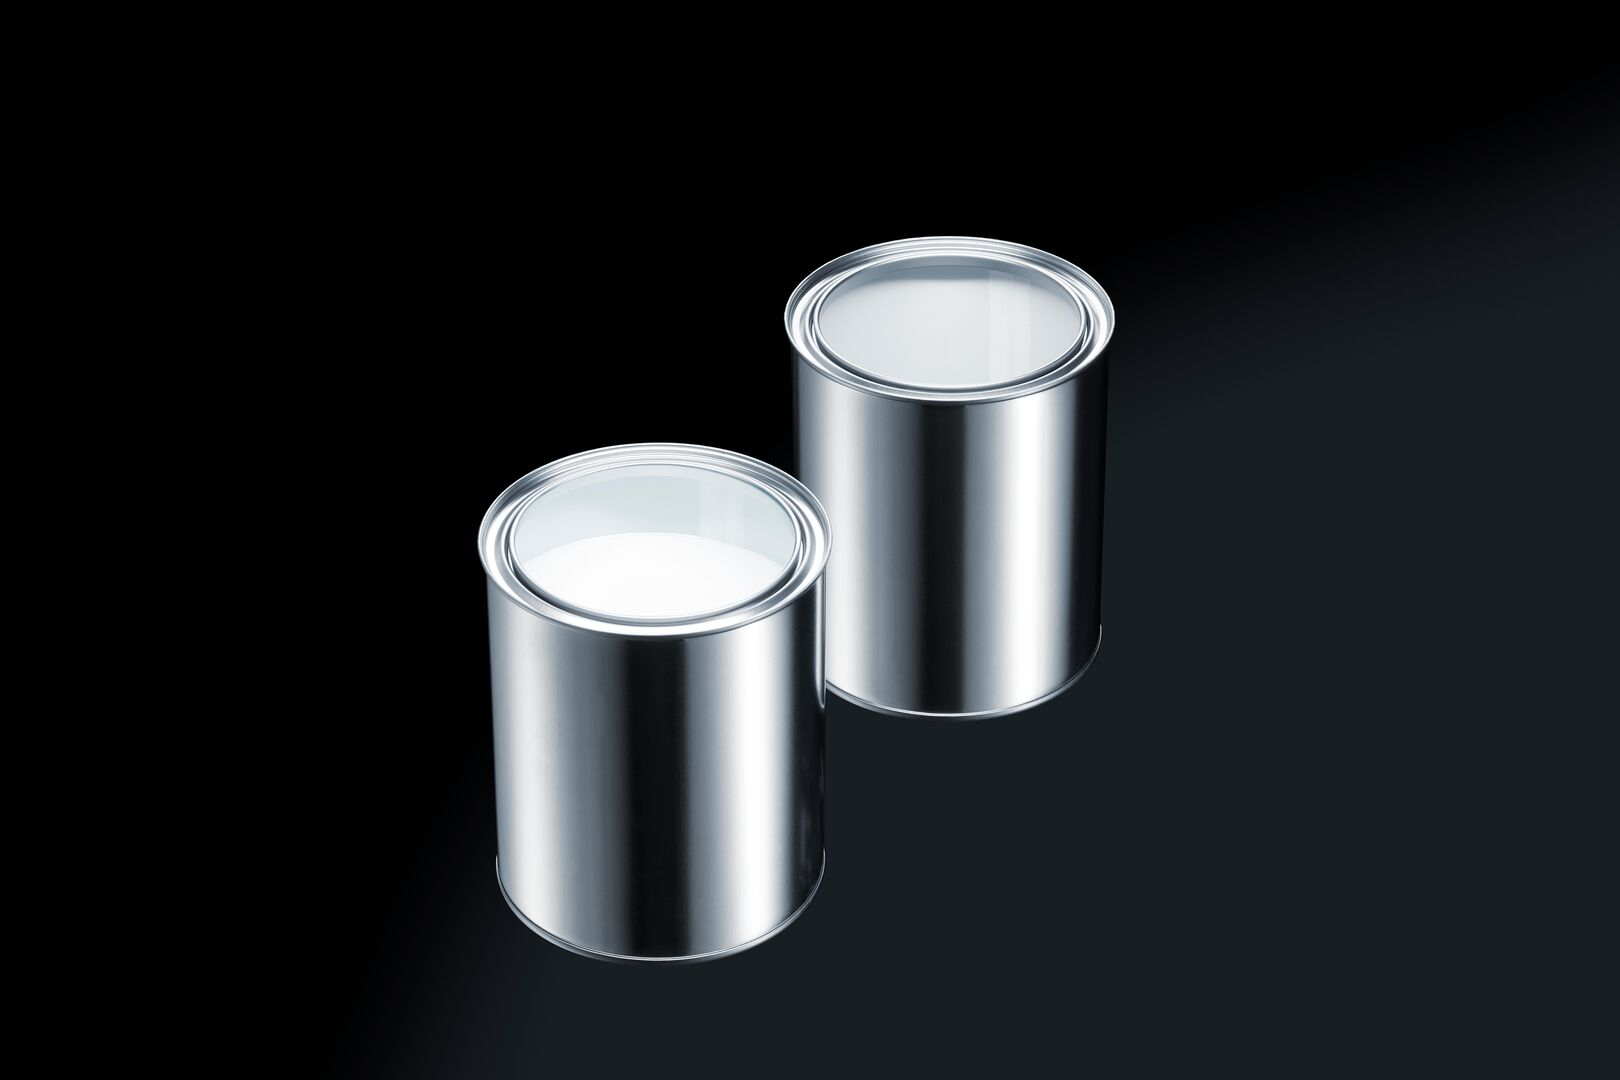 2018_Tata Steel_Packaging-Cans_018